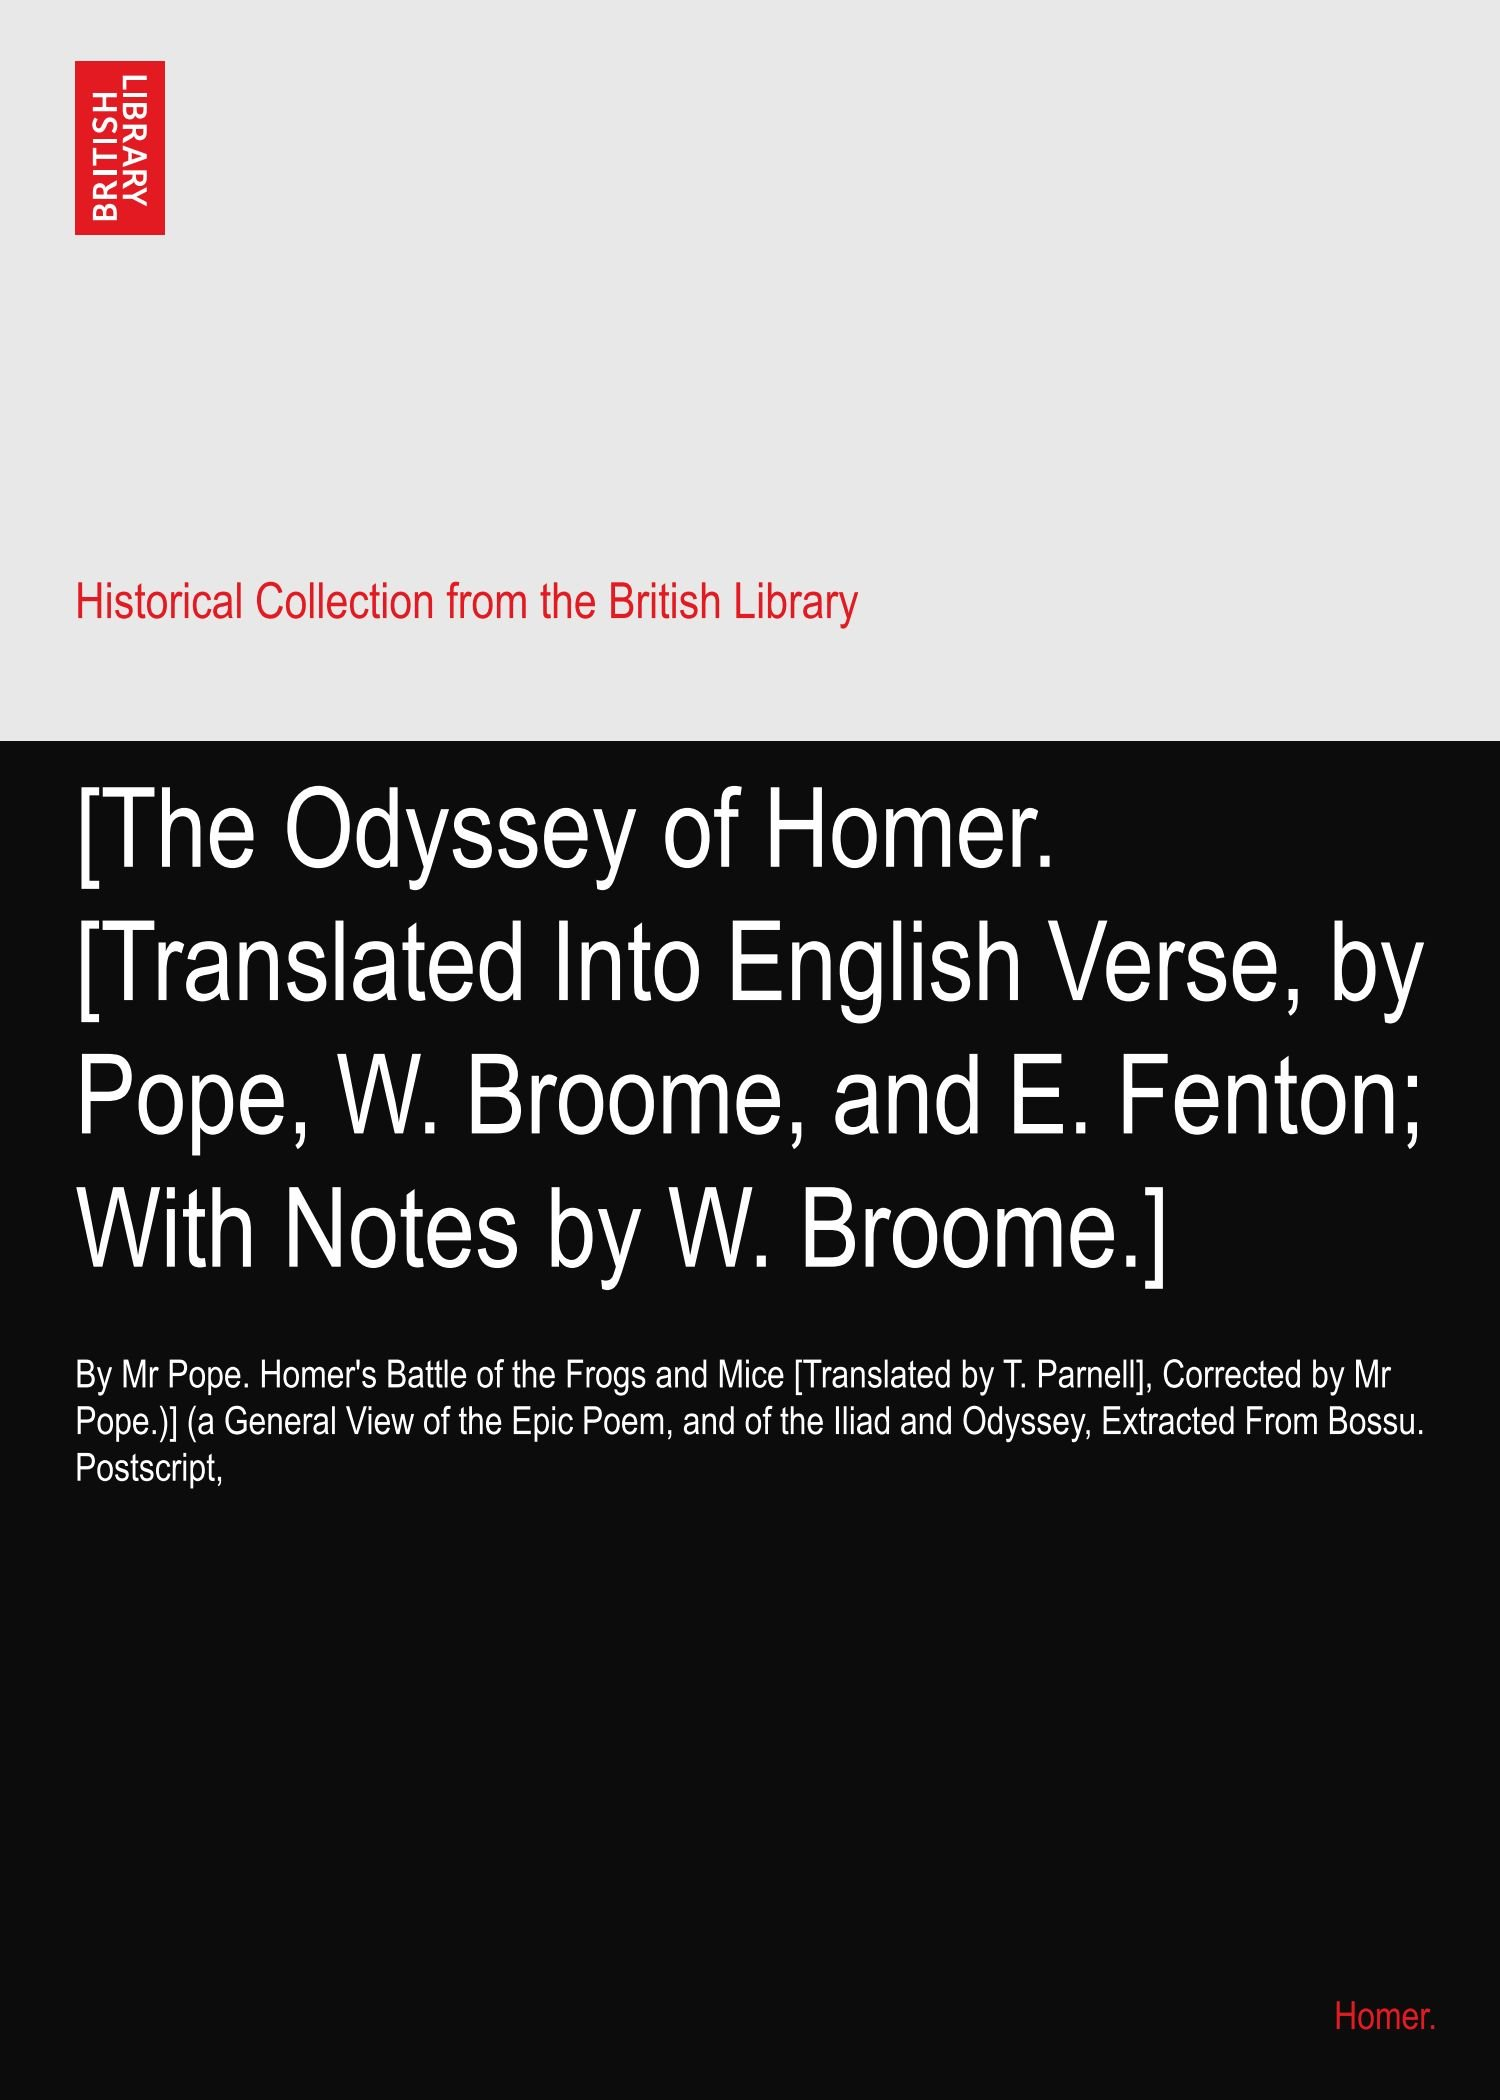 Read Online [The Odyssey of Homer. [Translated Into English Verse, by Pope, W. Broome, and E. Fenton; With Notes by W. Broome.]: By Mr Pope. Homer's Battle of the ... Odyssey, Extracted From Bossu. Postscript, pdf epub